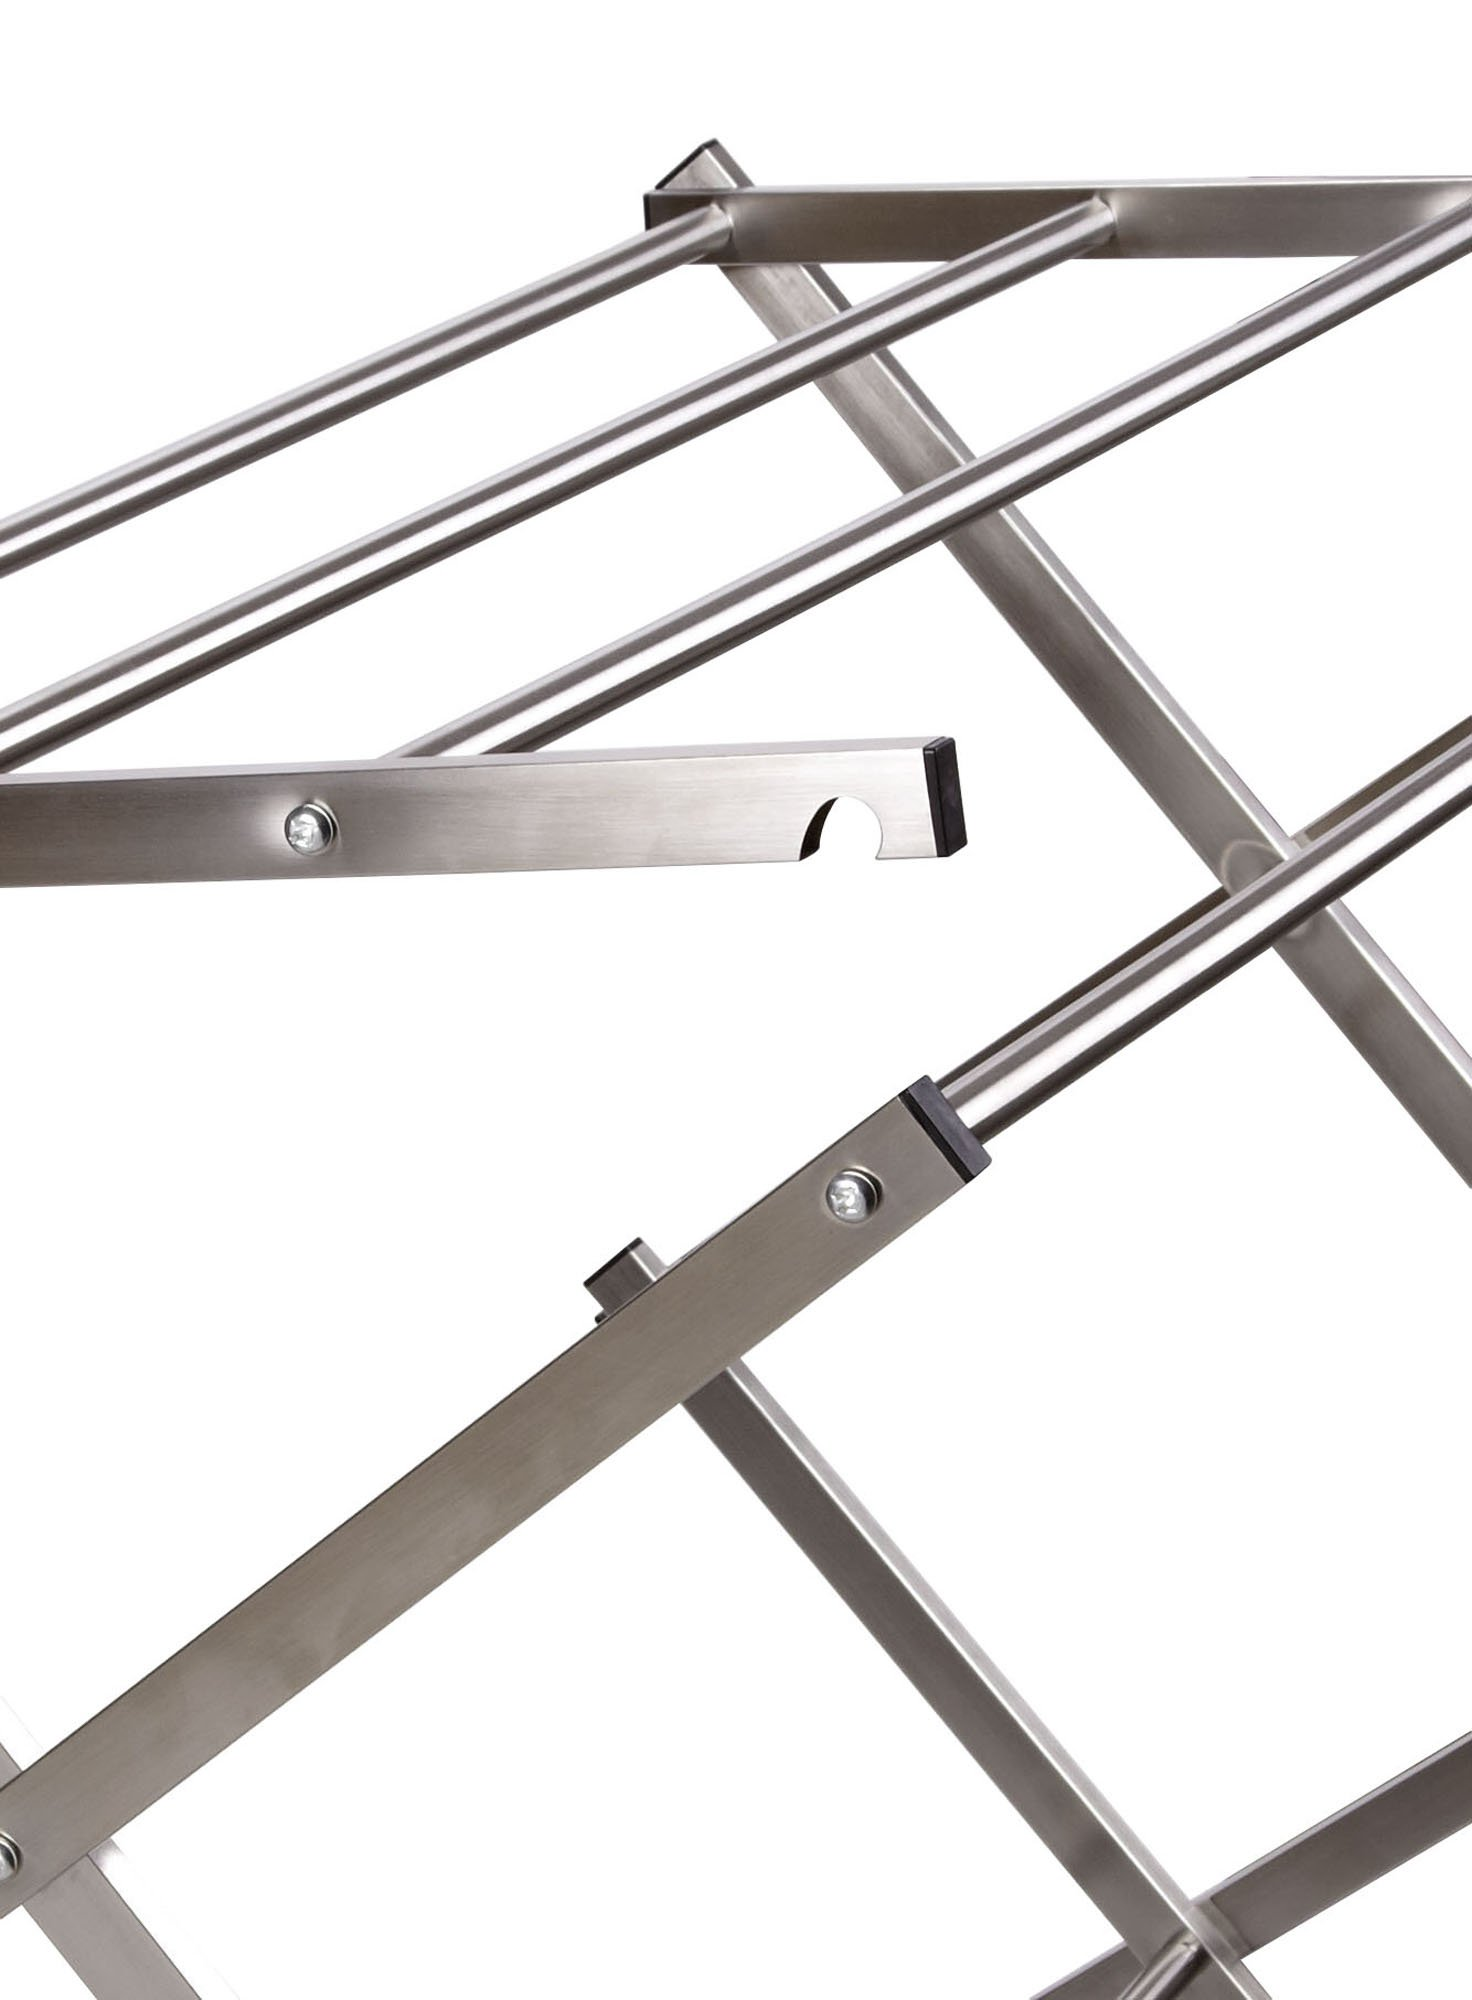 Household Essentials Folding X-Frame Clothes Dryer, Stainless Steel by Household Essentials (Image #3)